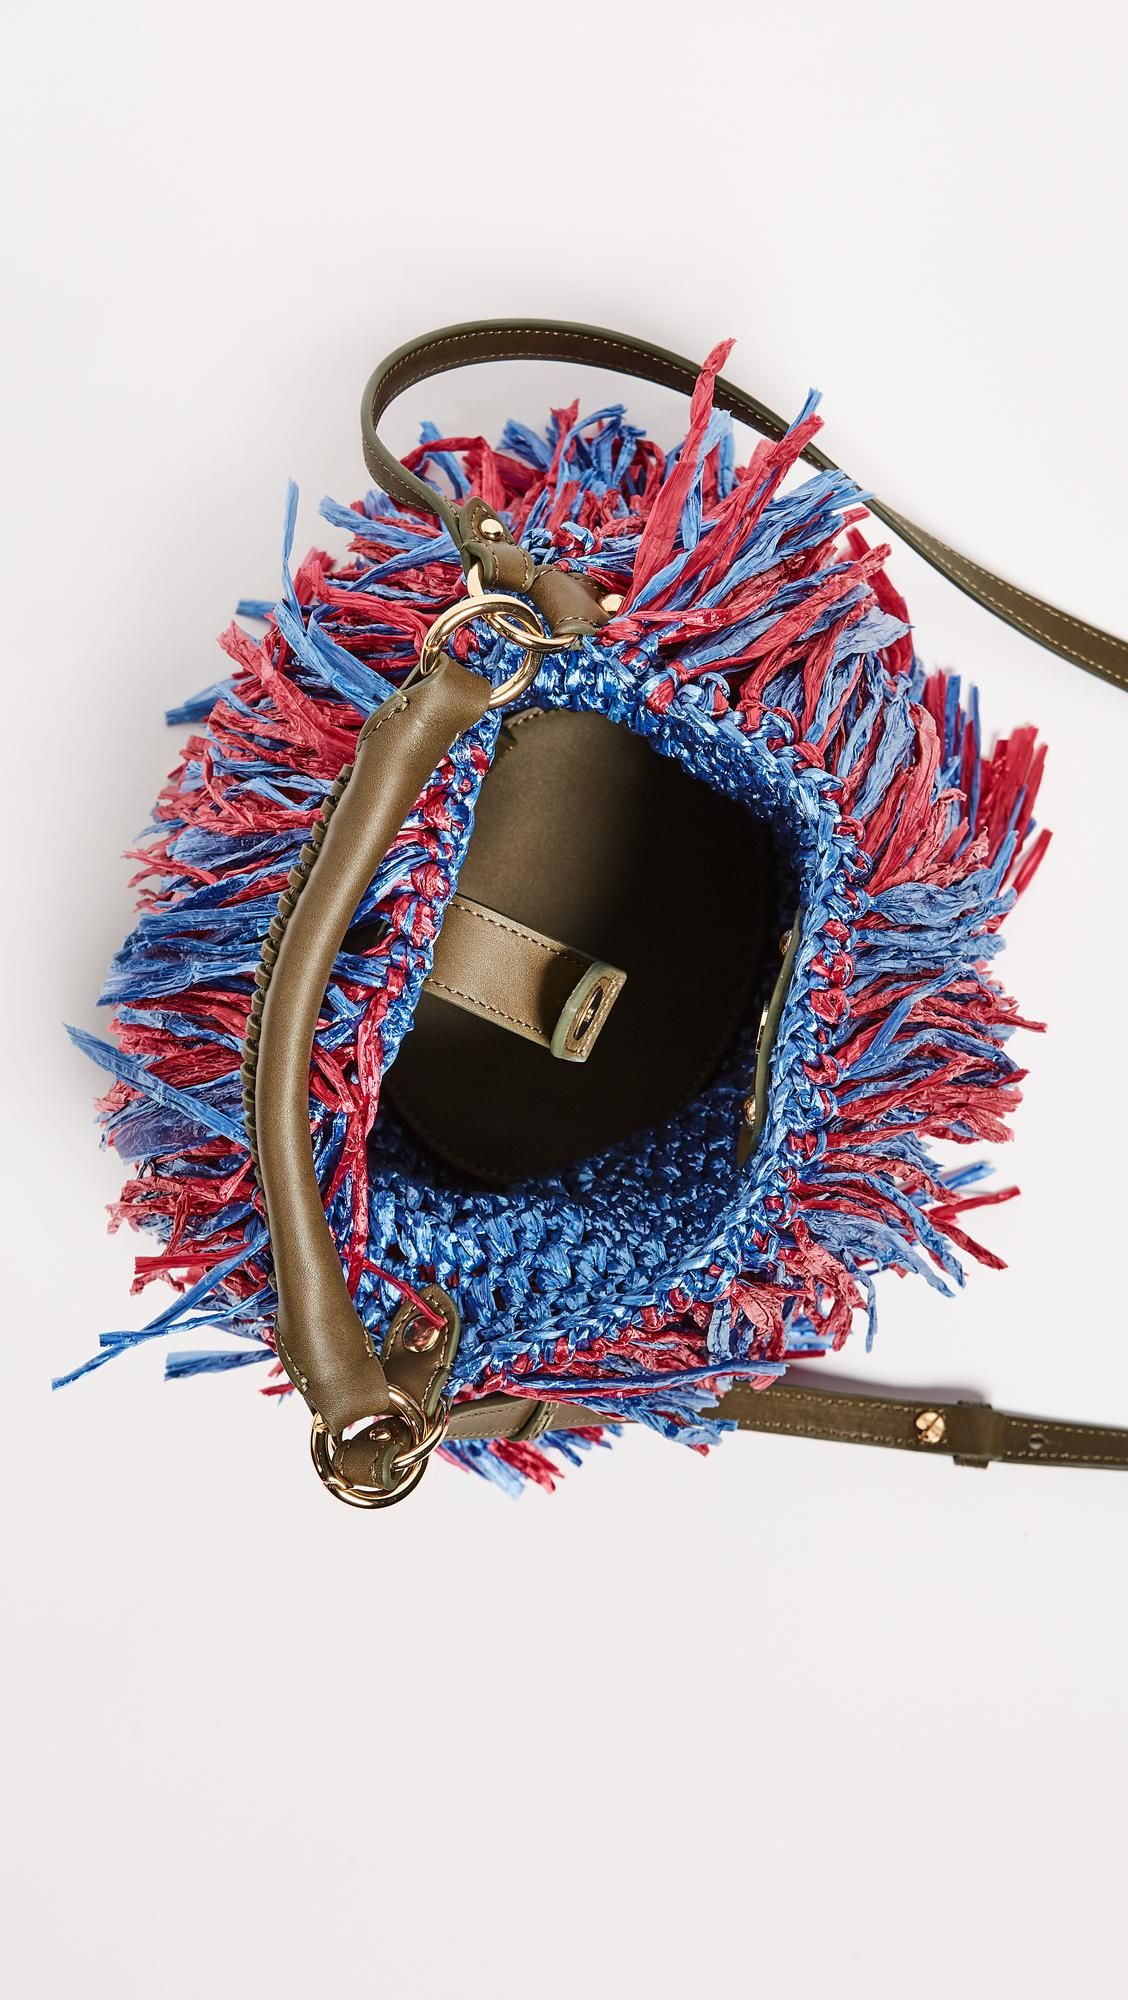 Diane von Furstenberg Leather Raffia Fringe Cross Body Bag